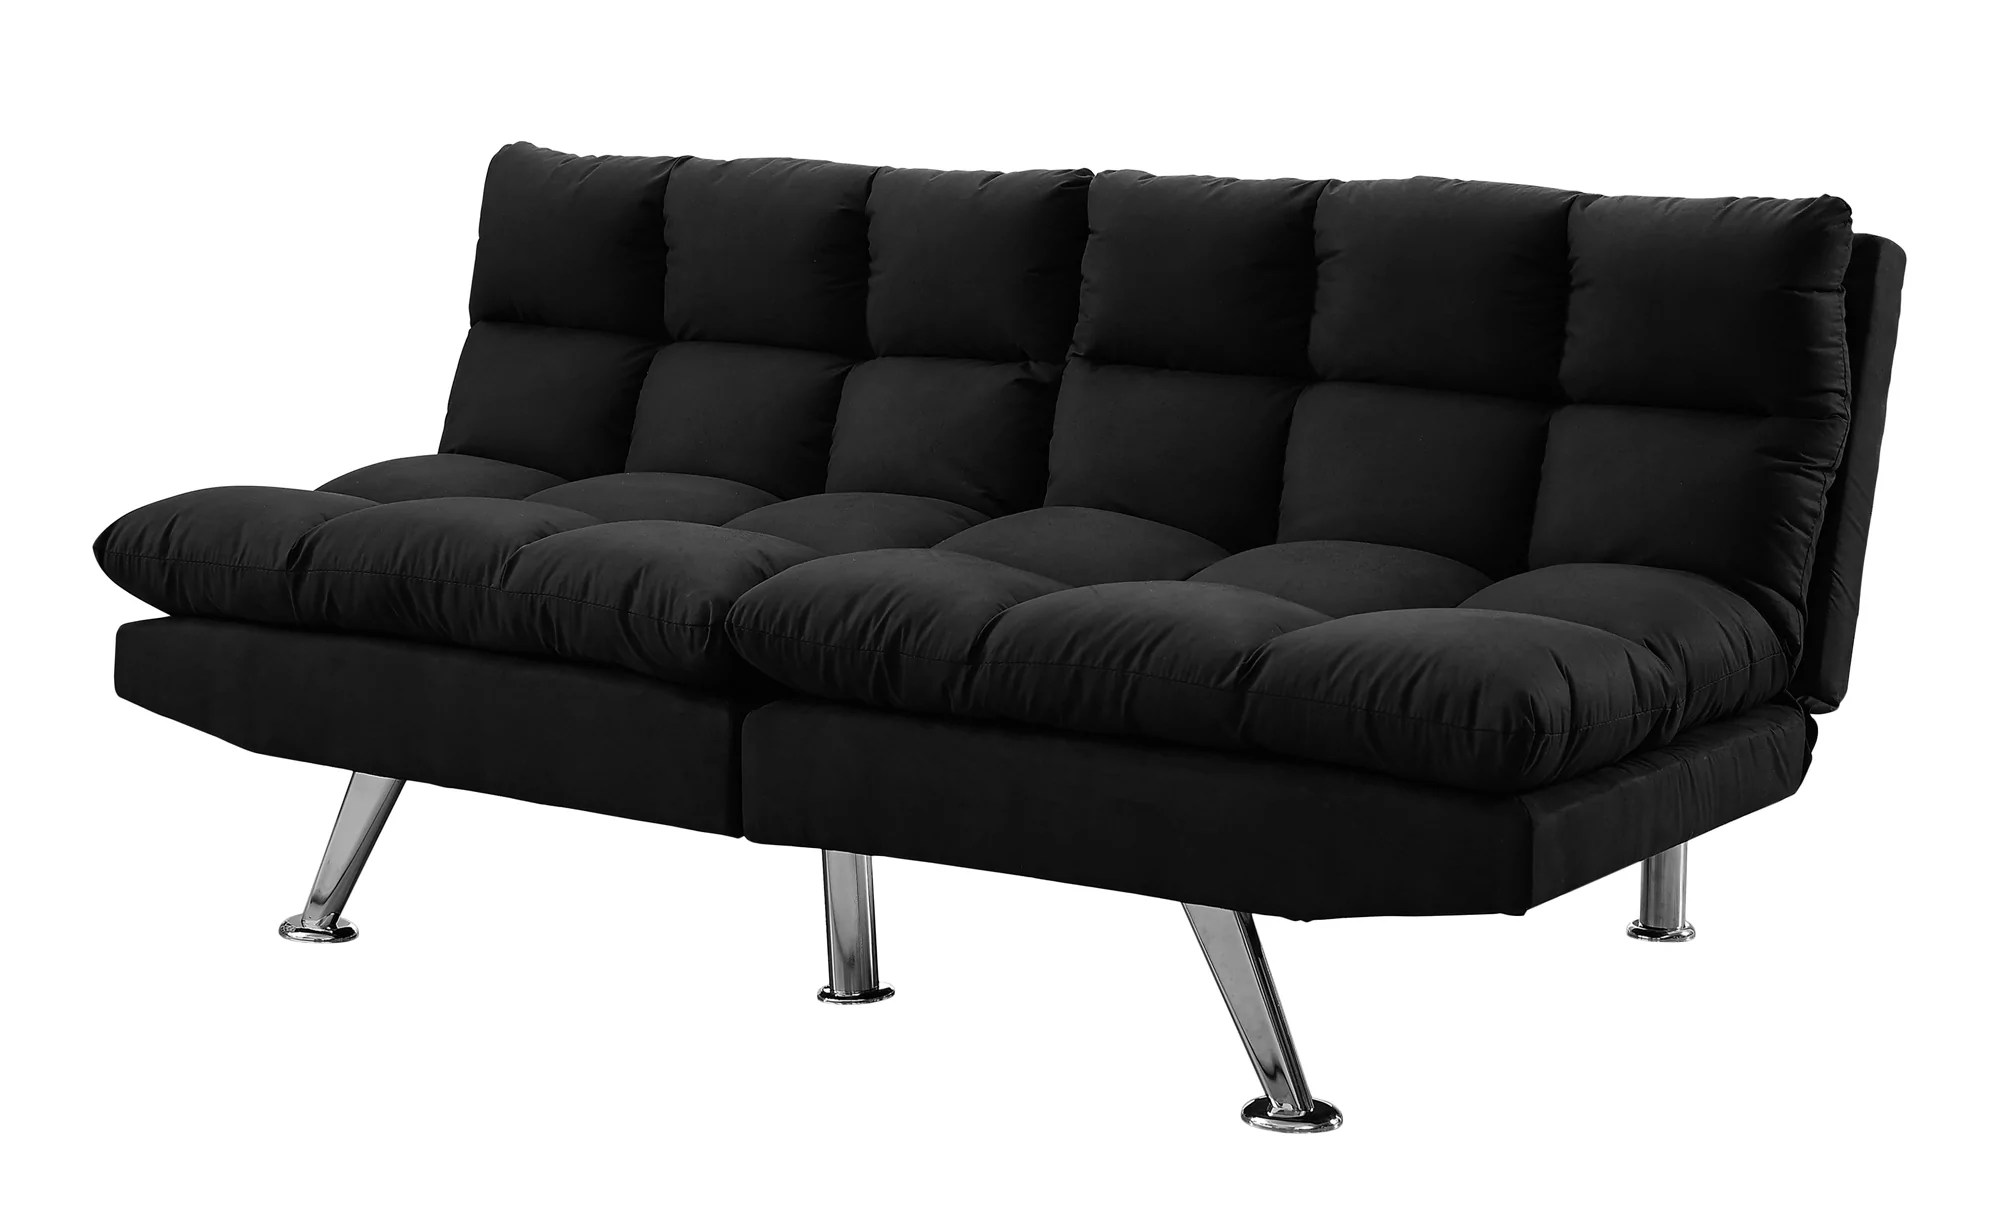 Futon Convertible 1 Place Buy Monarch Specialties I 8990 Futon Split Back Convertible Sofa Black Micro Suede At Contemporary Furniture Warehouse